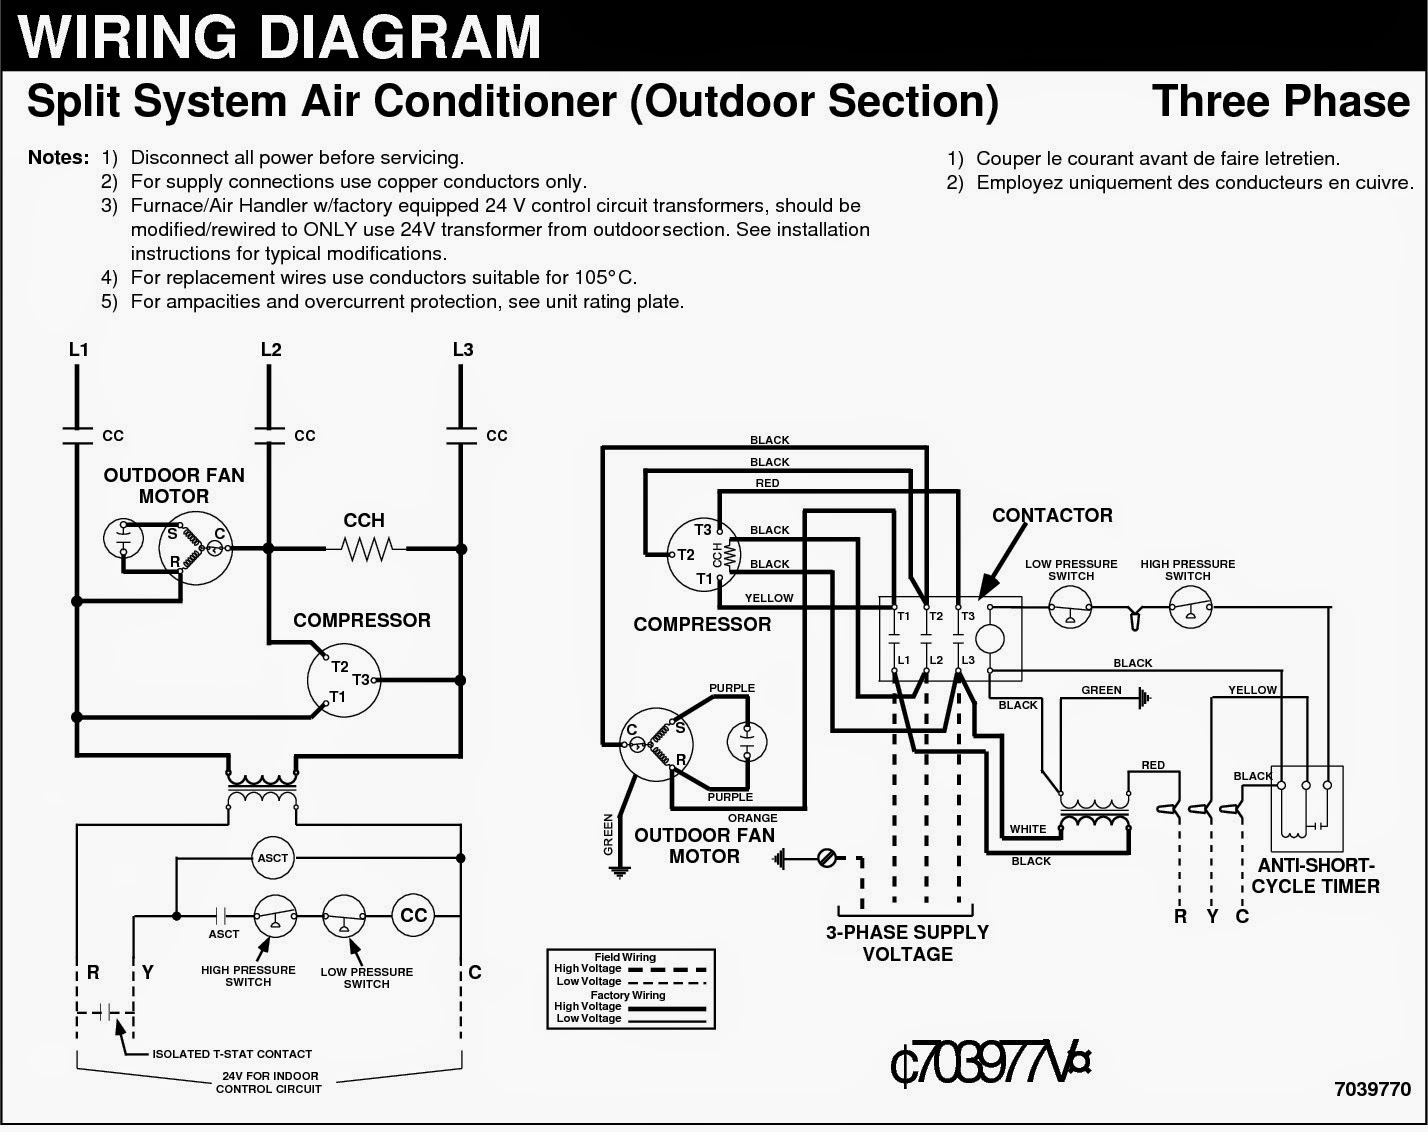 electrical wiring diagrams for air conditioning systems part two York Air Conditioners Wiring Diagrams  wiring diagram for air conditioning unit Home AC Heater Unit Wiring Diagram for Furnace